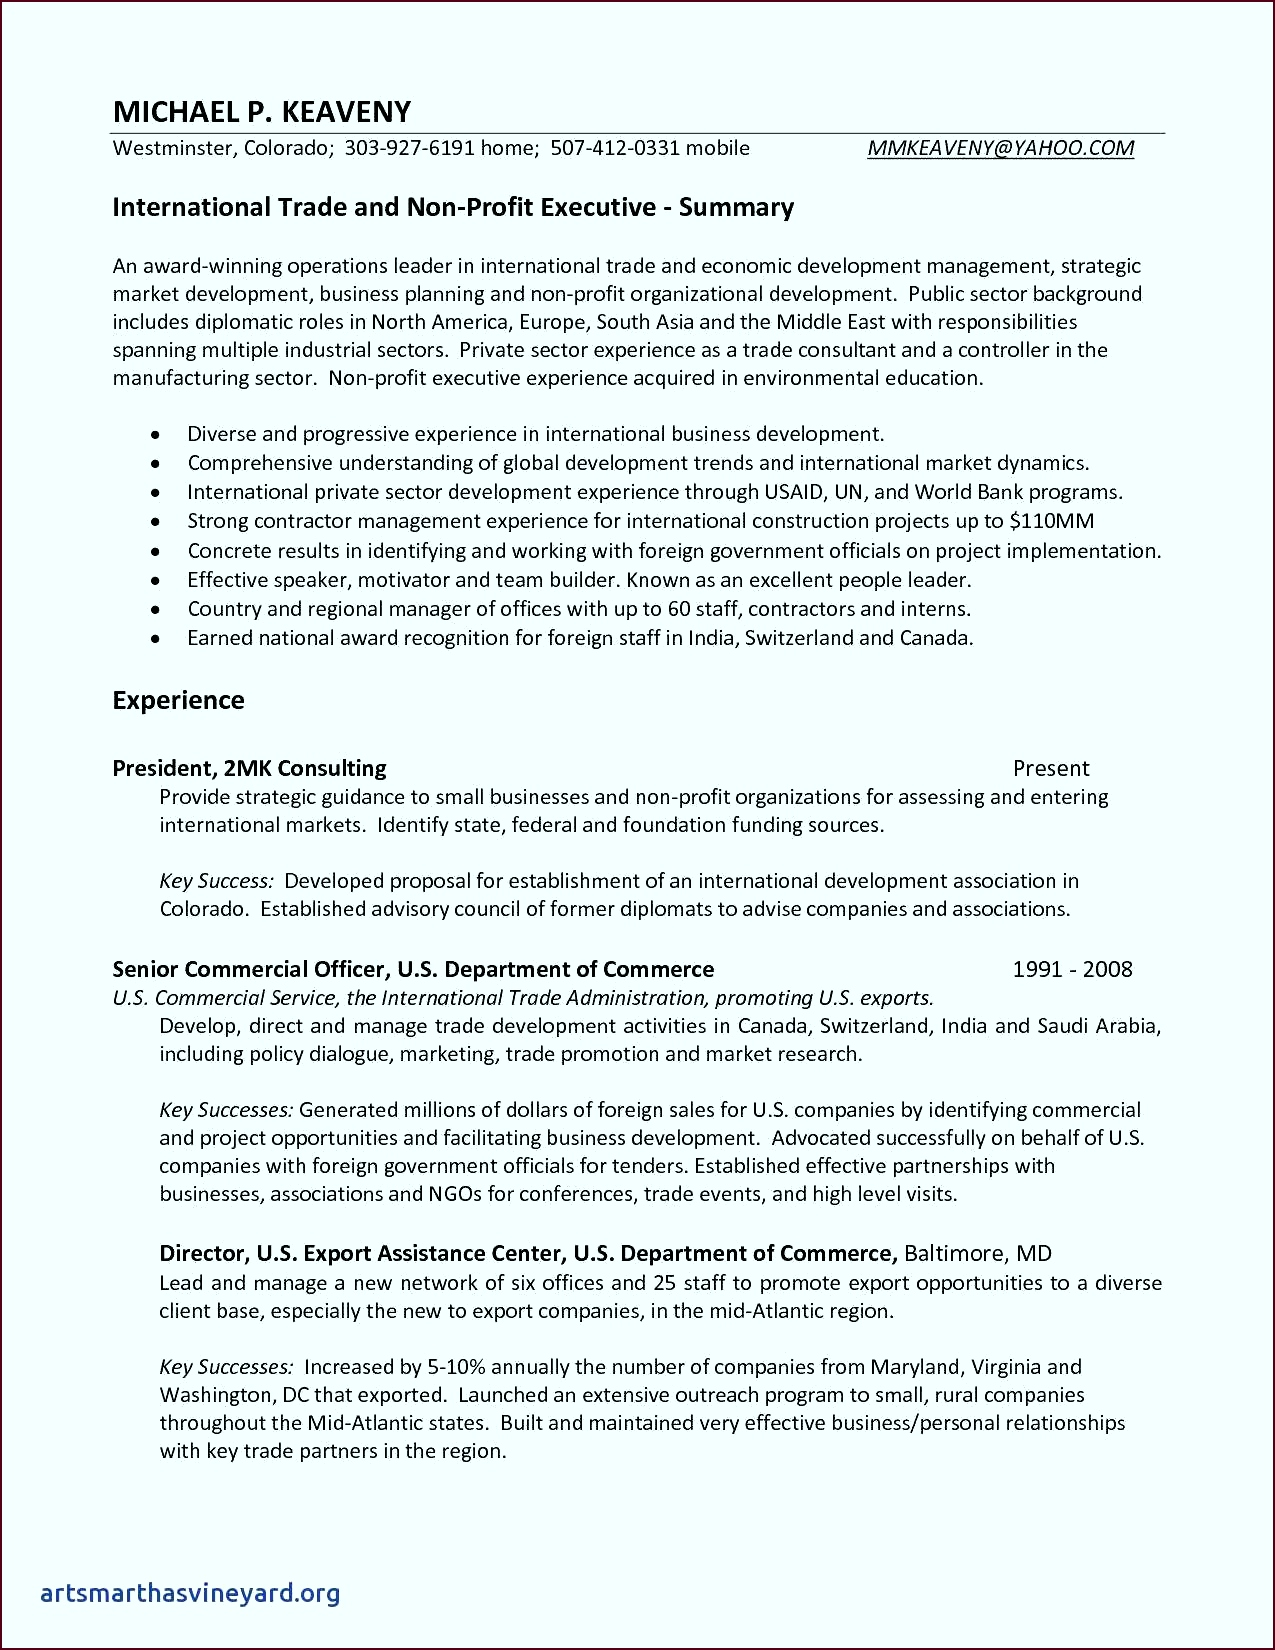 Free Small Business Website Templates Simple Propsal Template Unique American Resume Sample New Student Resume 0d wtore